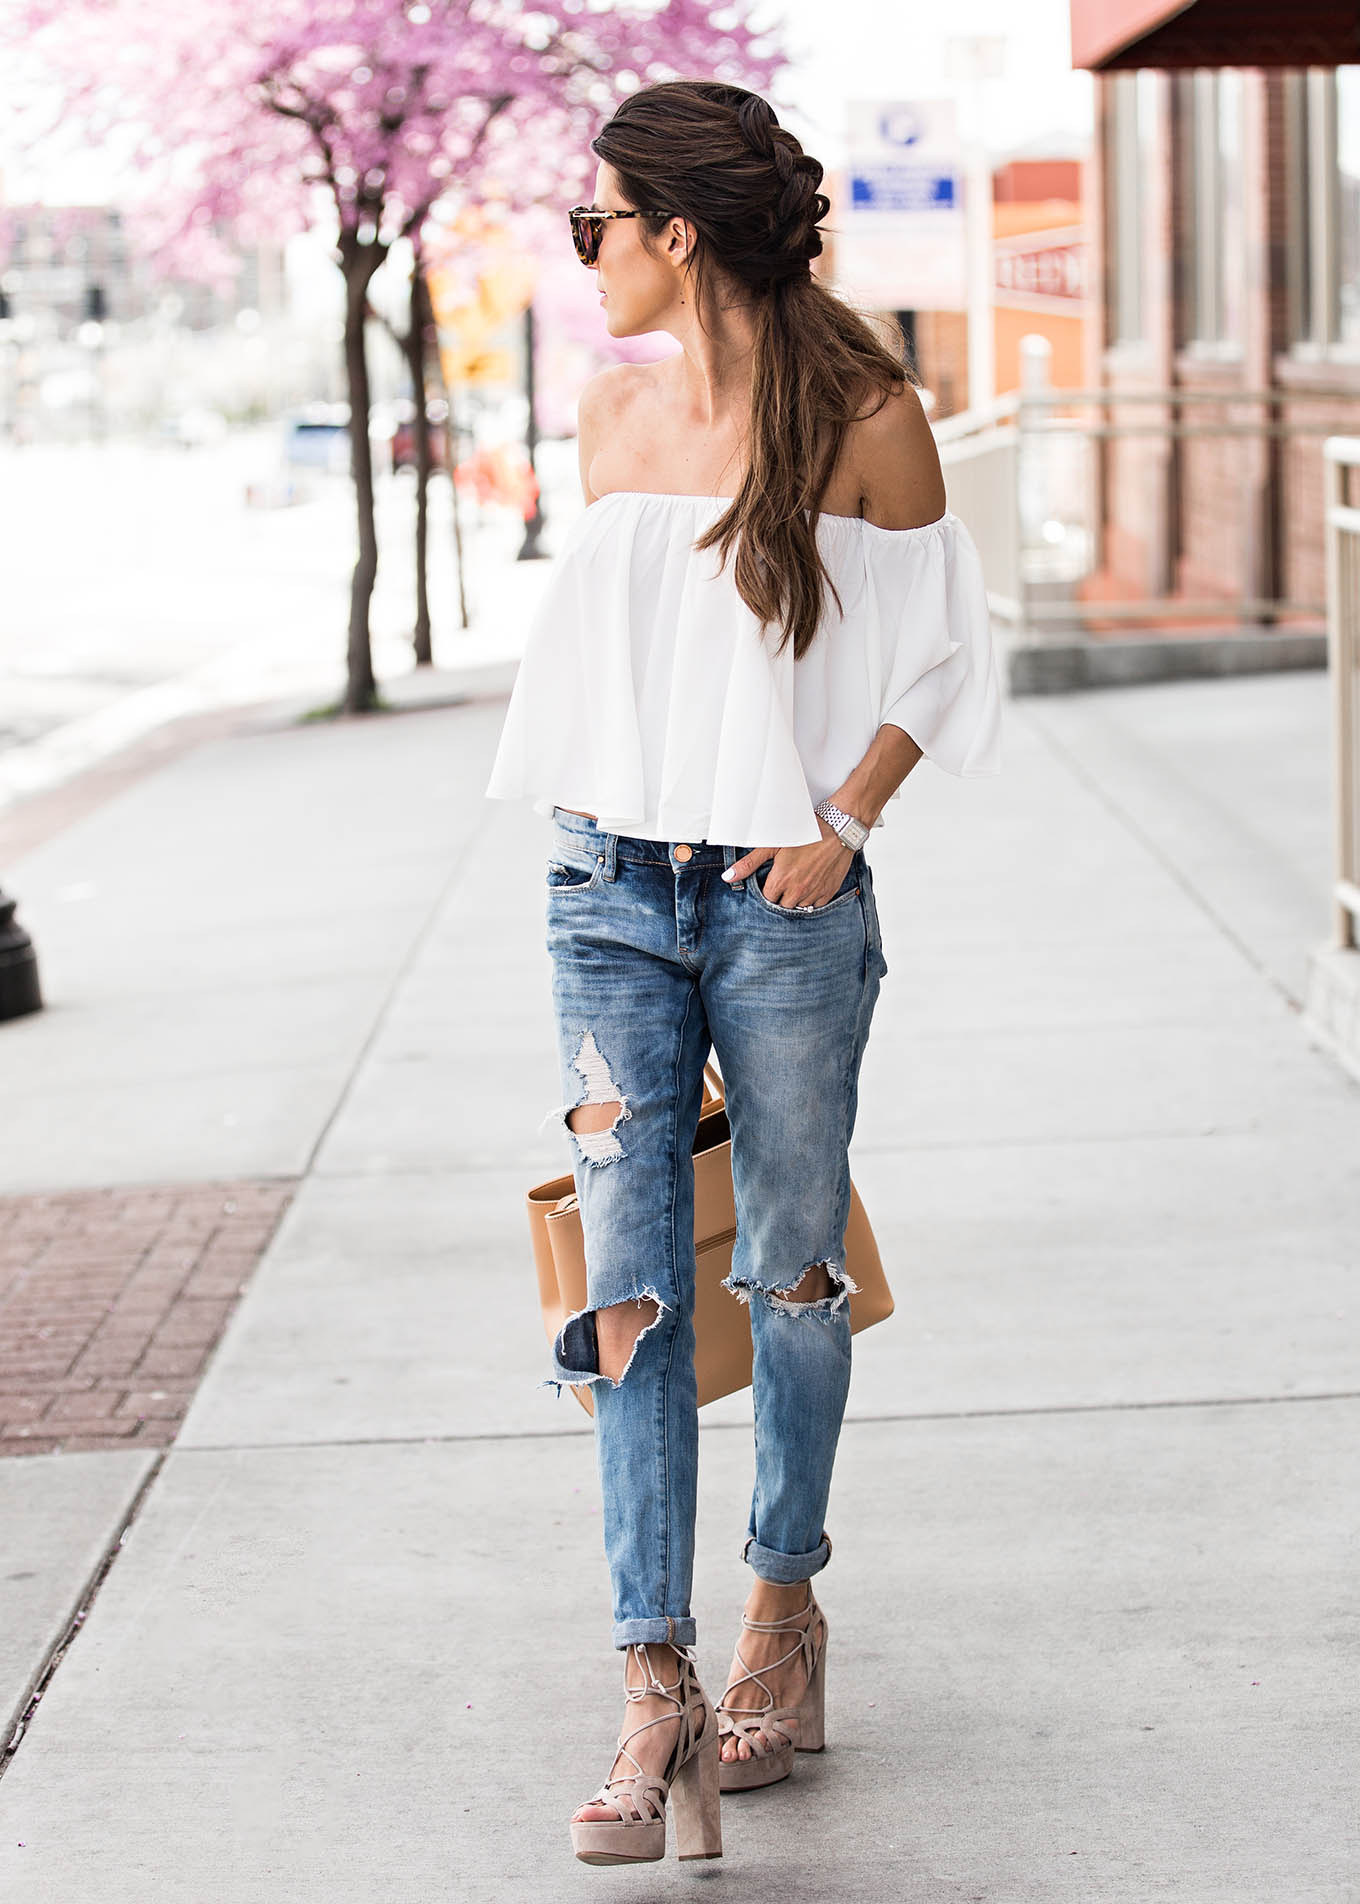 59 Cute Spring Outfit Ideas To Try Right Now - Just The Design